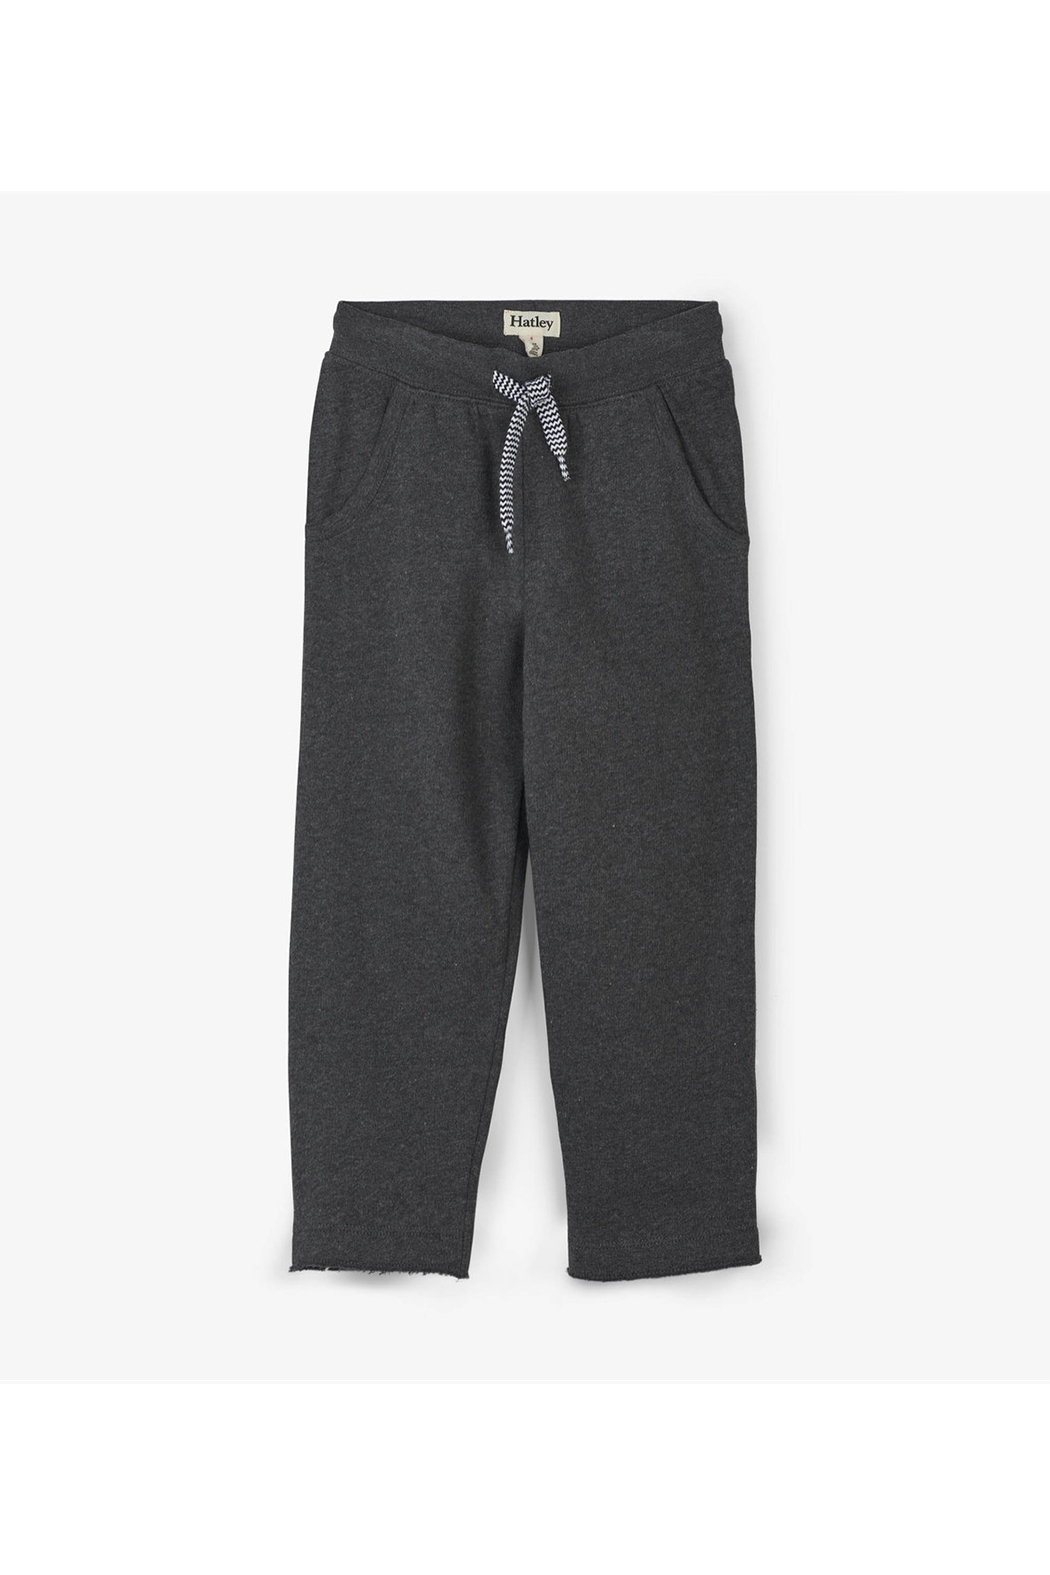 Hatley Moonshadow Brushed Fleece Track Pant - Front Cropped Image